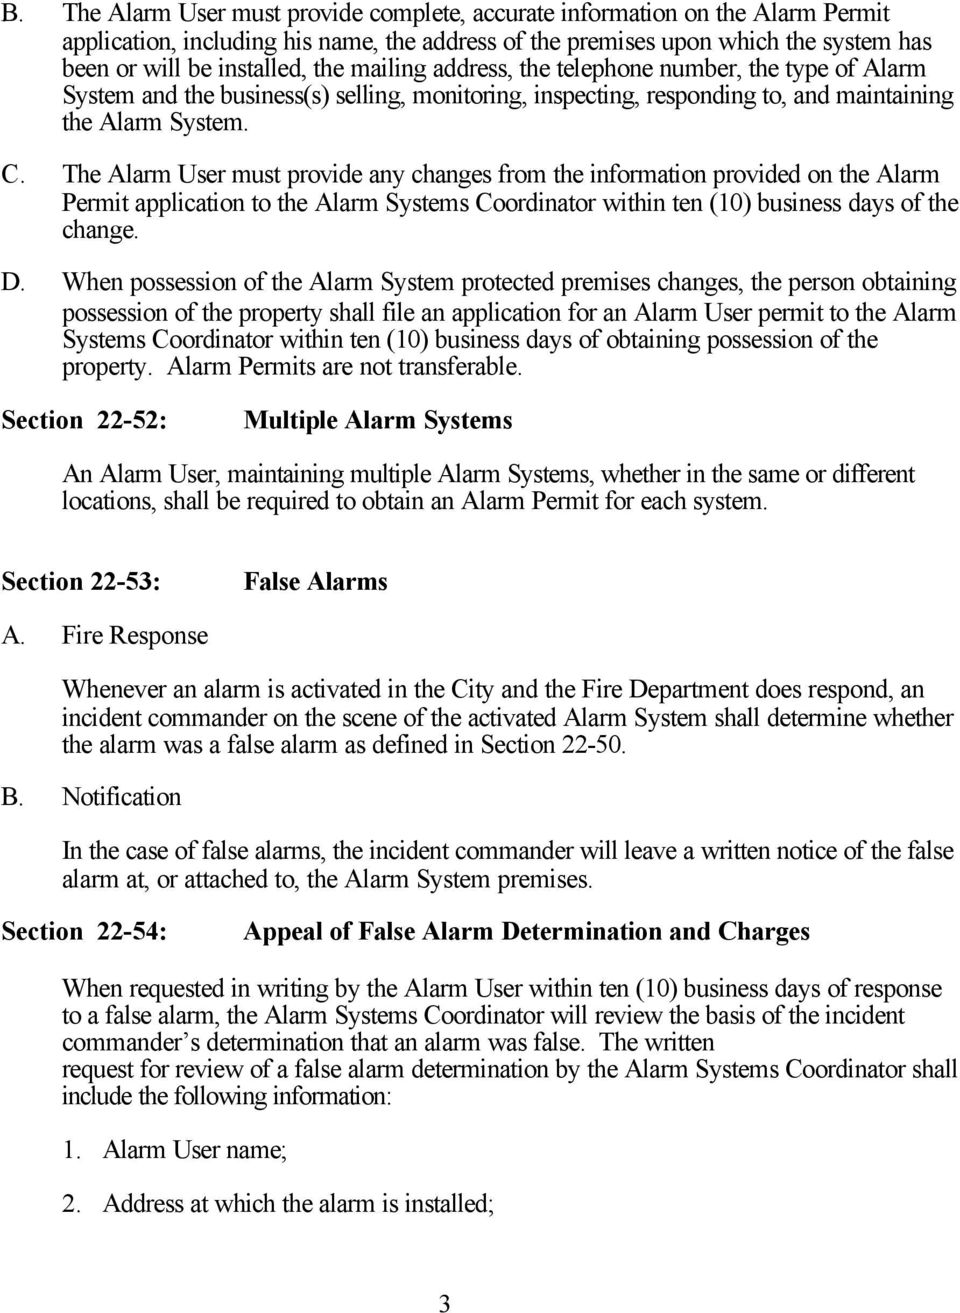 The Alarm User must provide any changes from the information provided on the Alarm Permit application to the Alarm Systems Coordinator within ten (10) business days of the change. D.